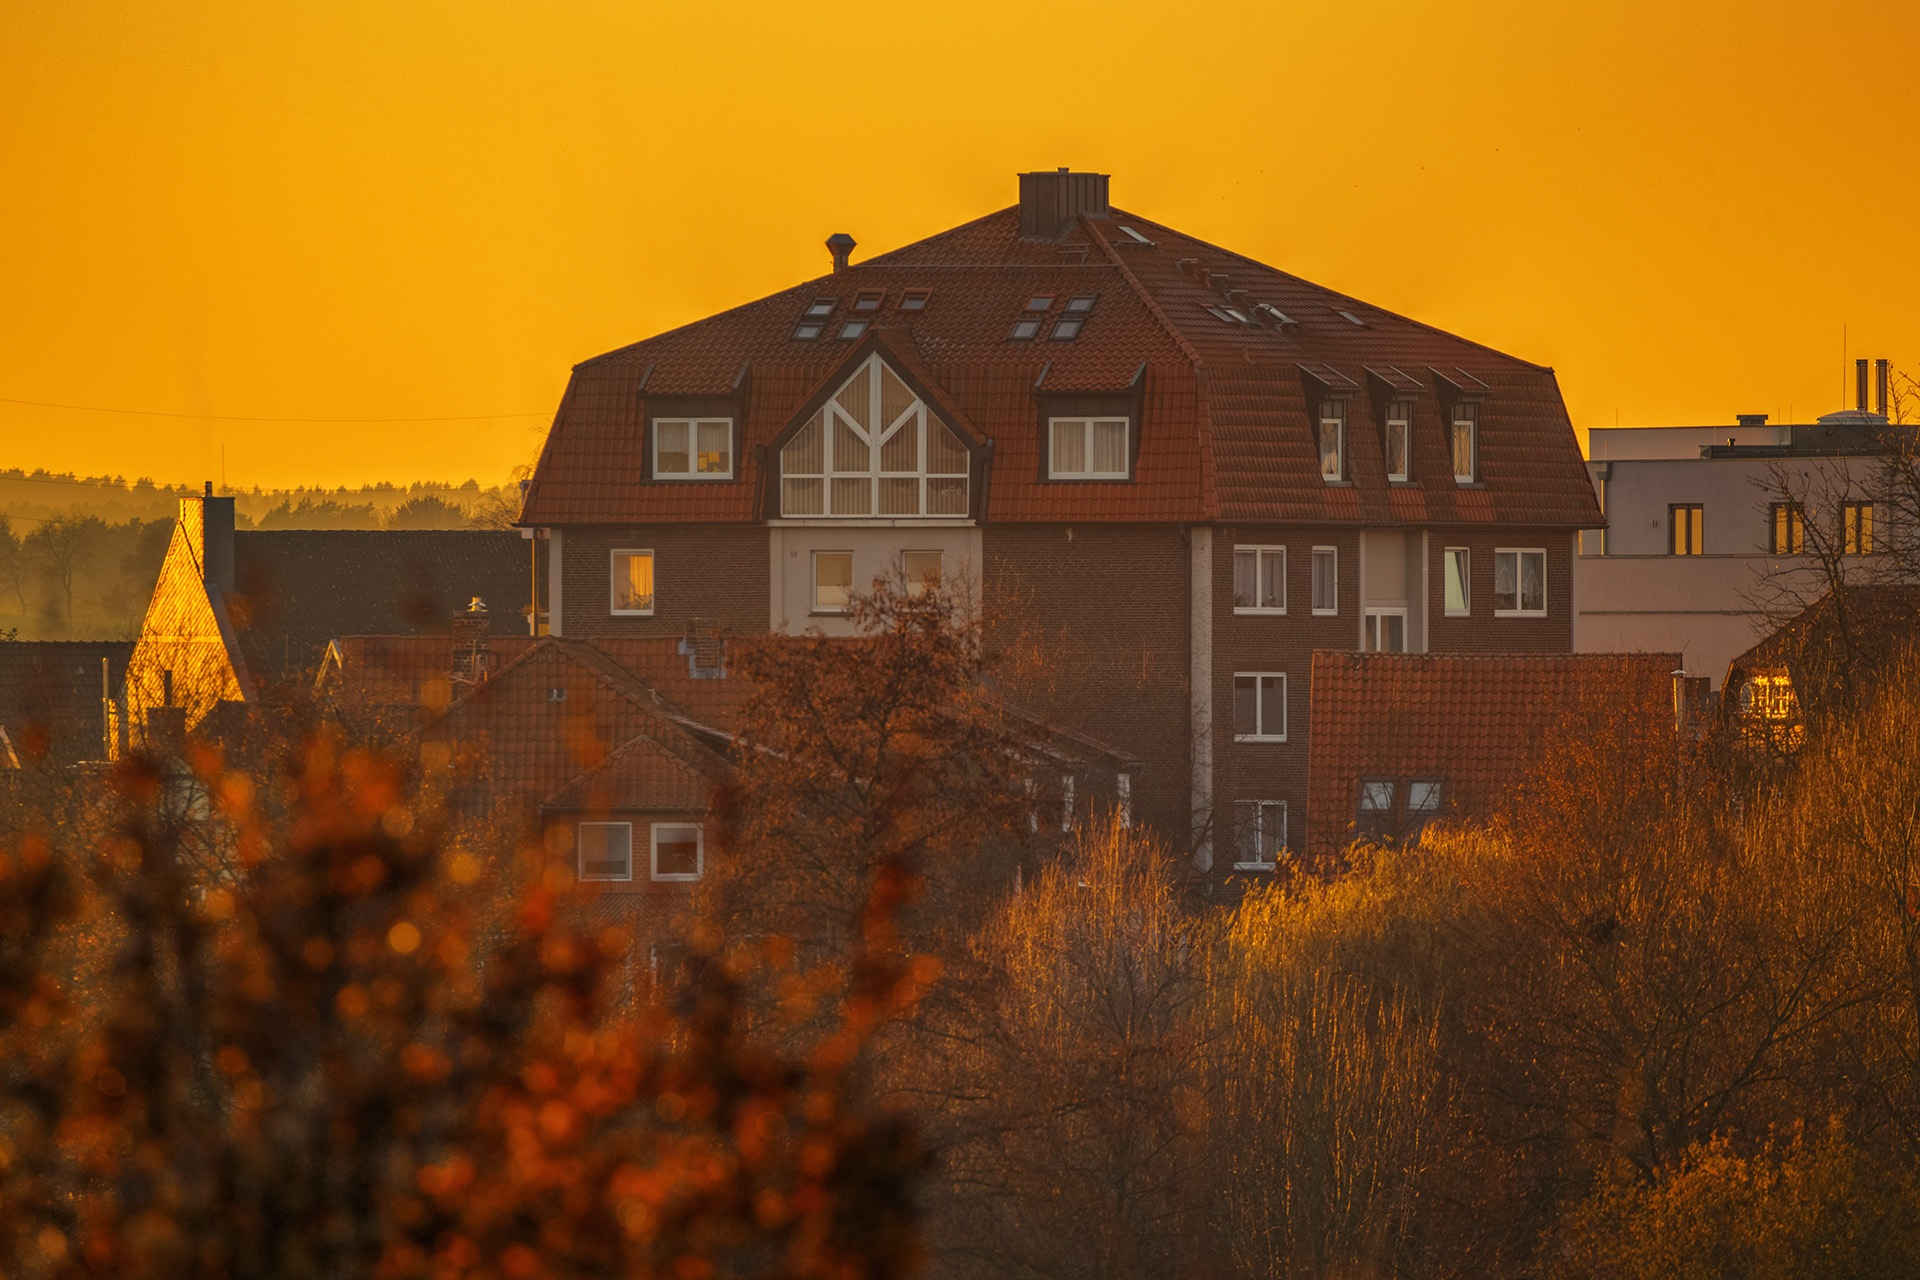 My town at the golden hour by Maik Richter Photography